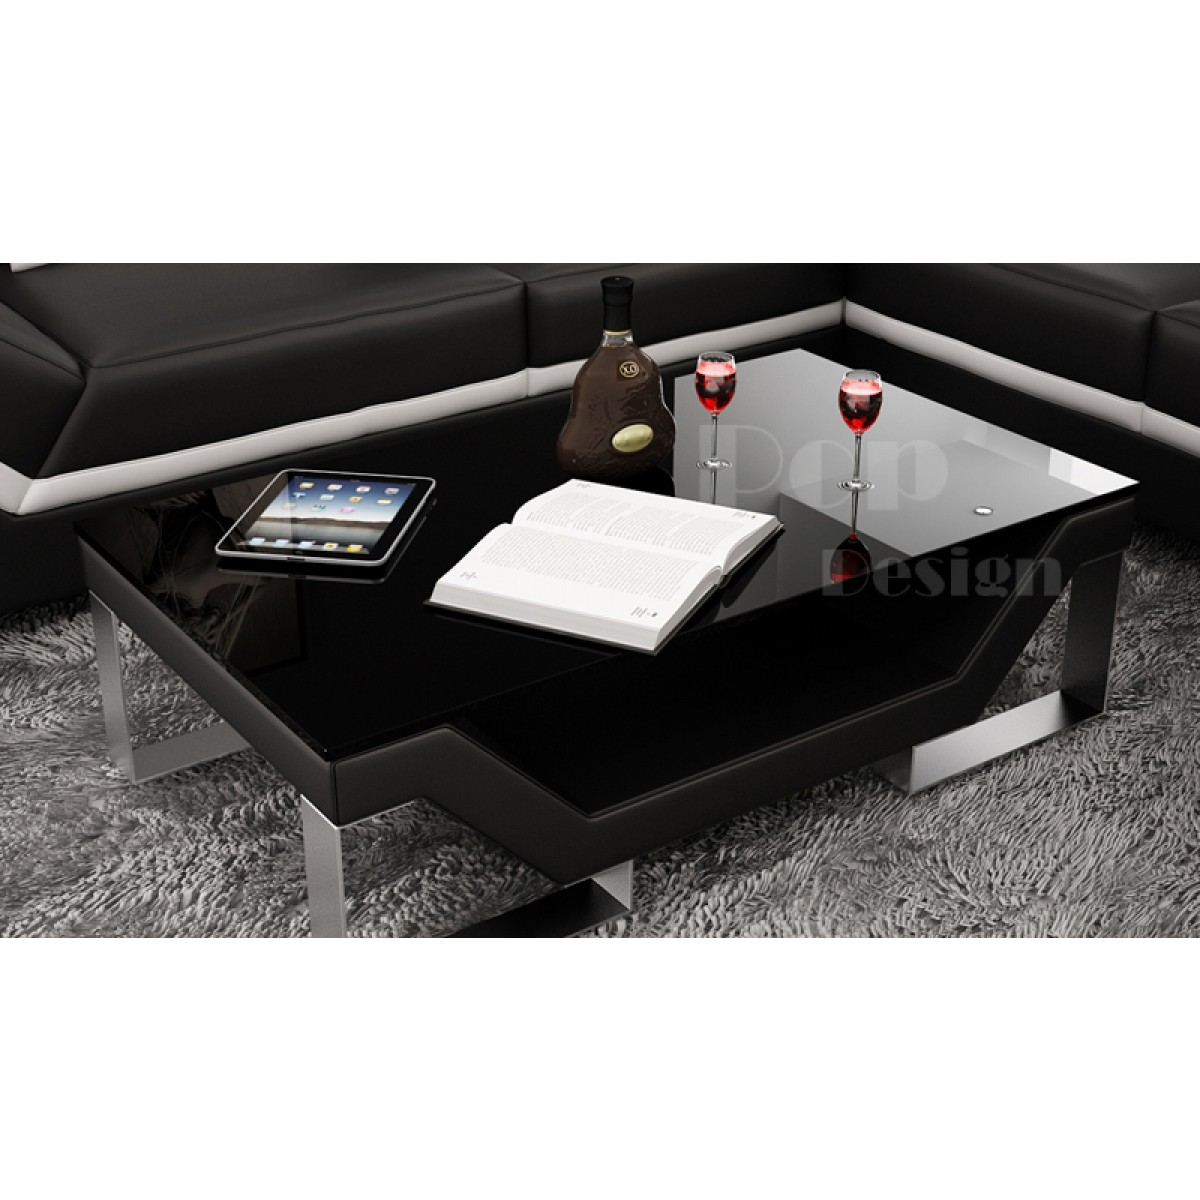 Table basse torino personnalisable pop for Table basse personnalisable